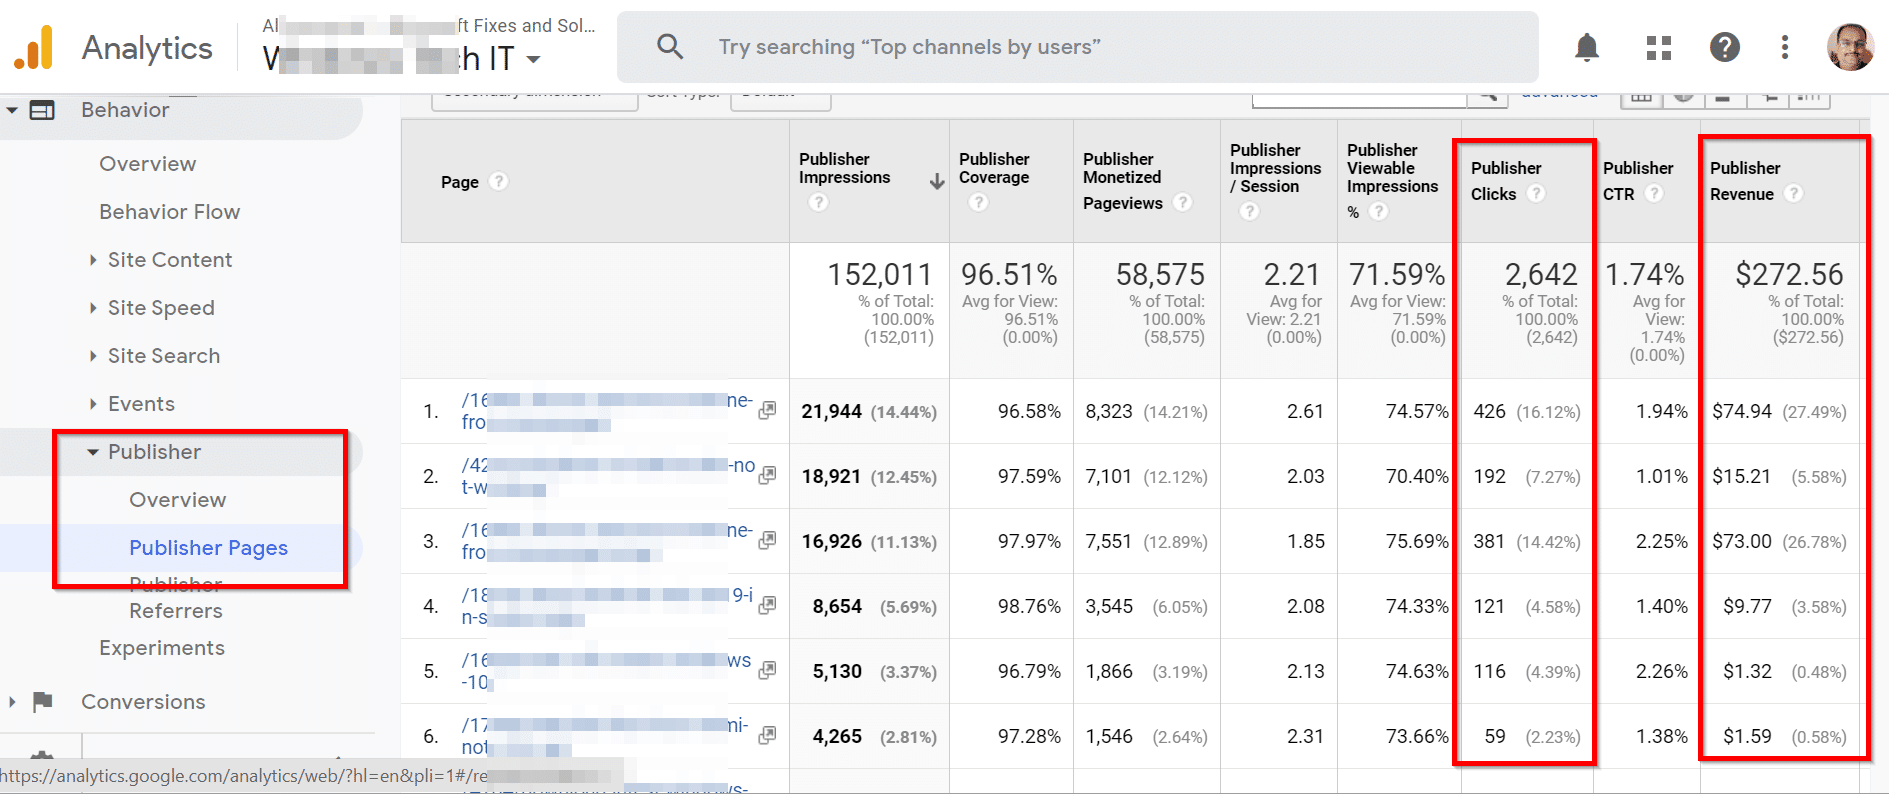 How to view Publisher Revenue Pages in Google Analytics